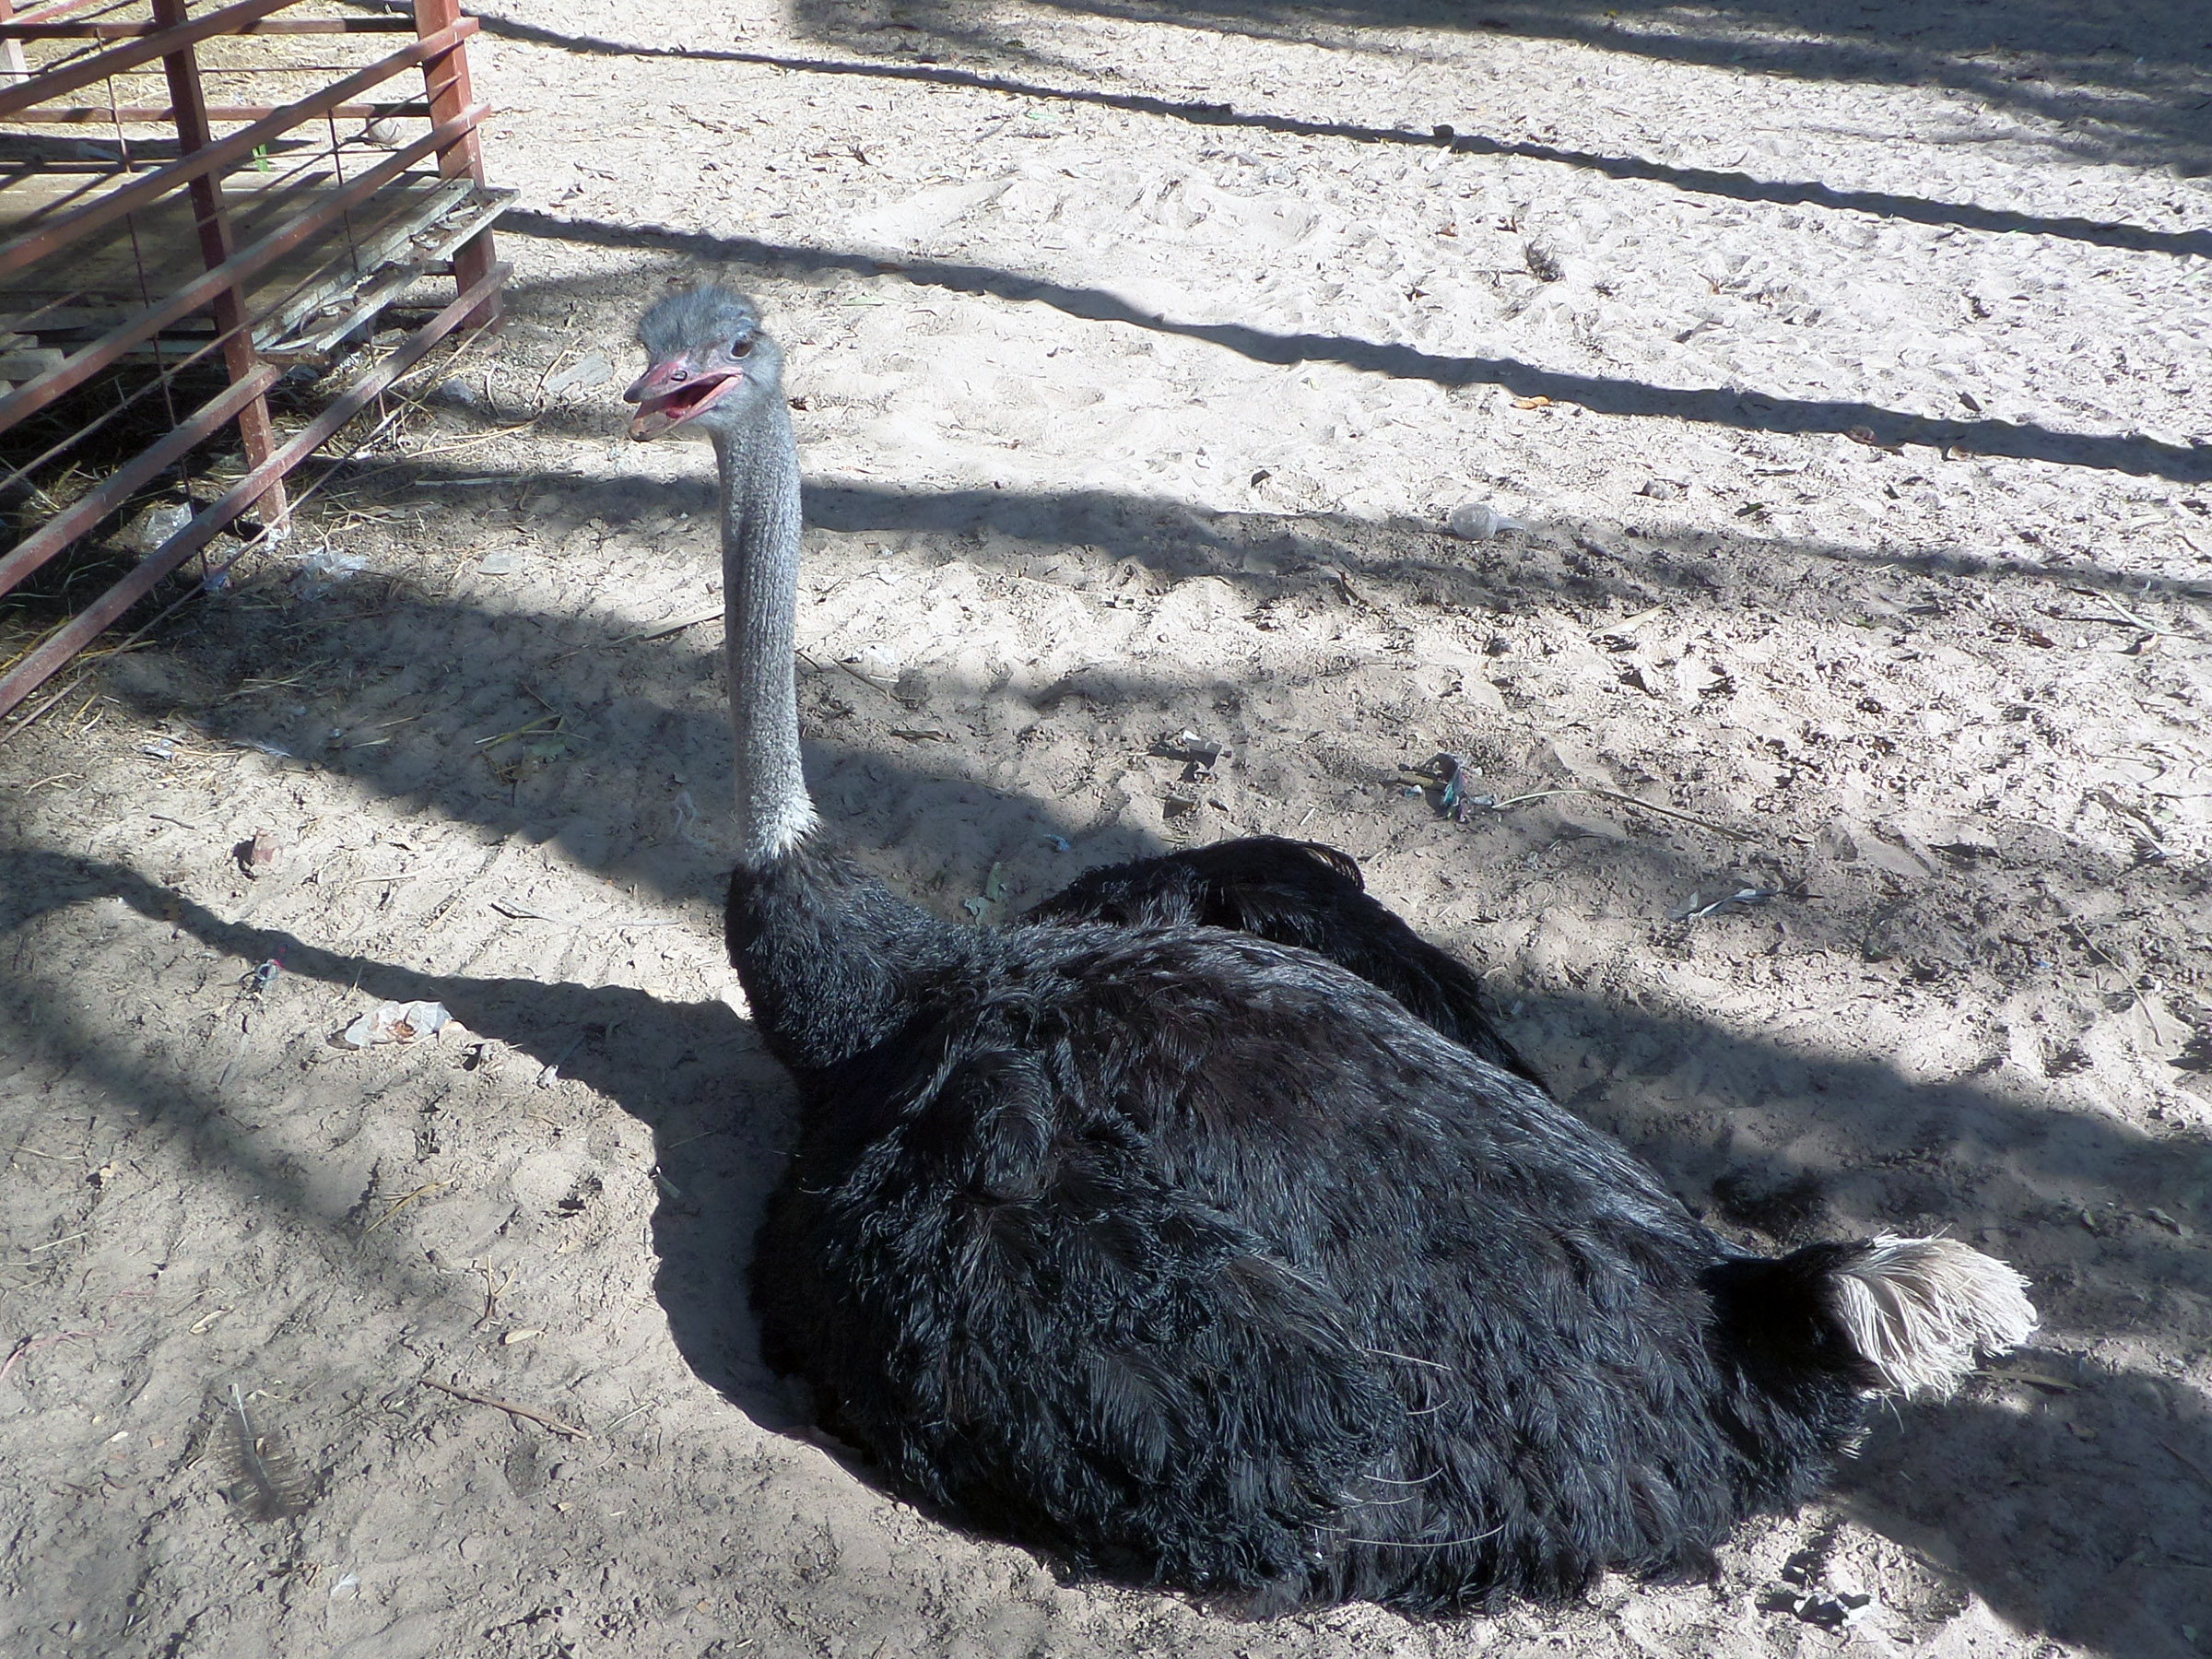 Sitting ostrich, Africa, African, Bird, Flightless, HQ Photo